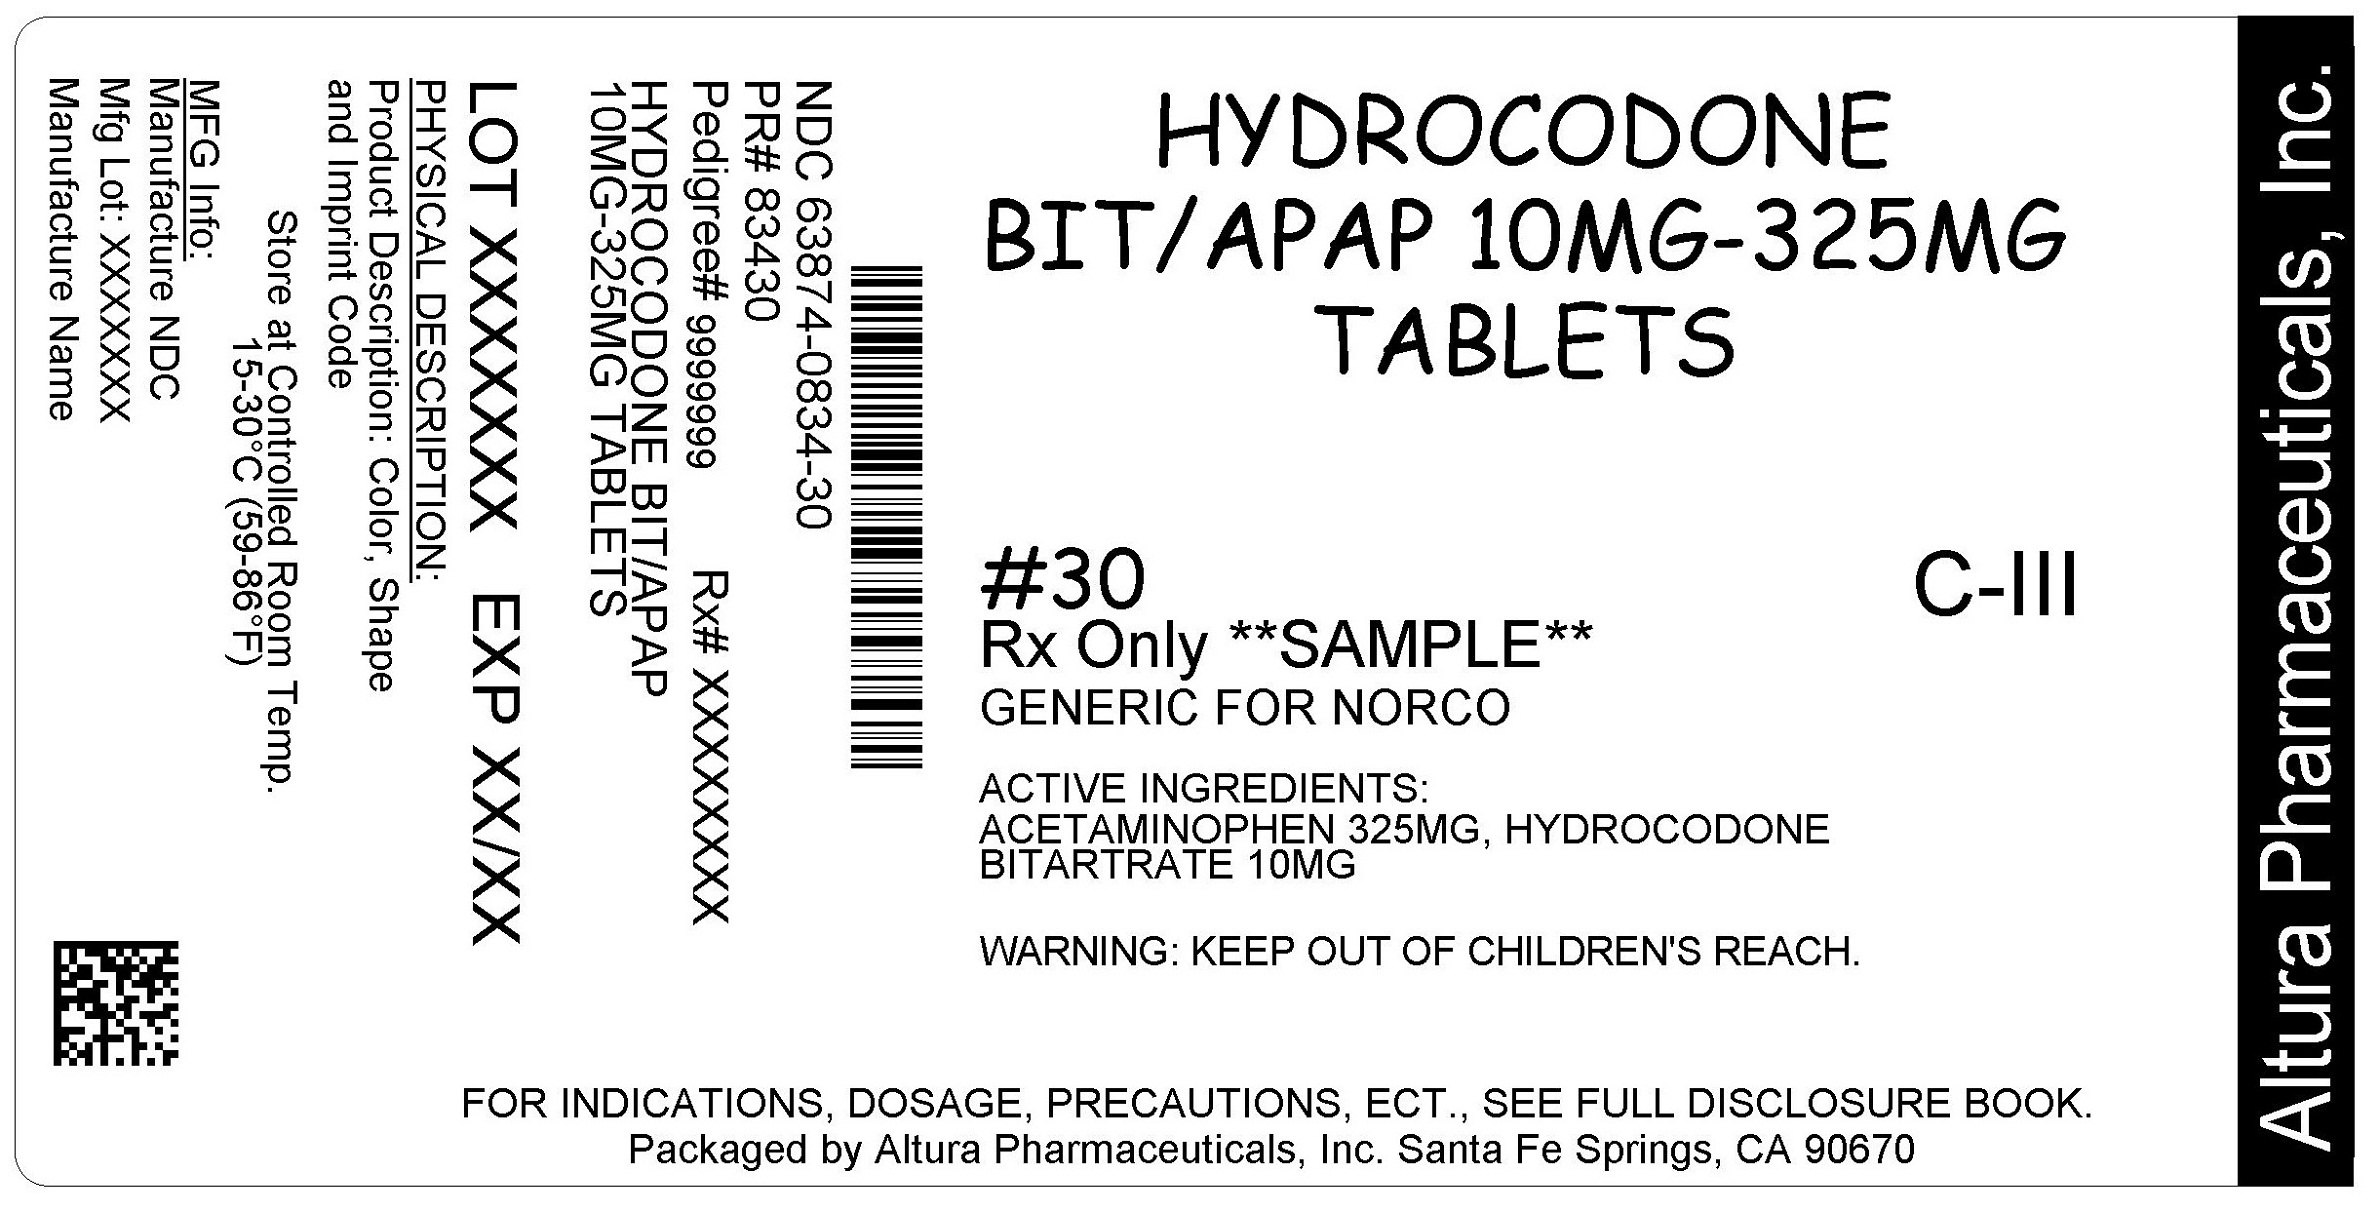 This is an image of the label for 10 mg/325 mg Hydrocodone Bitartrate and Acetaminophen Tablets.